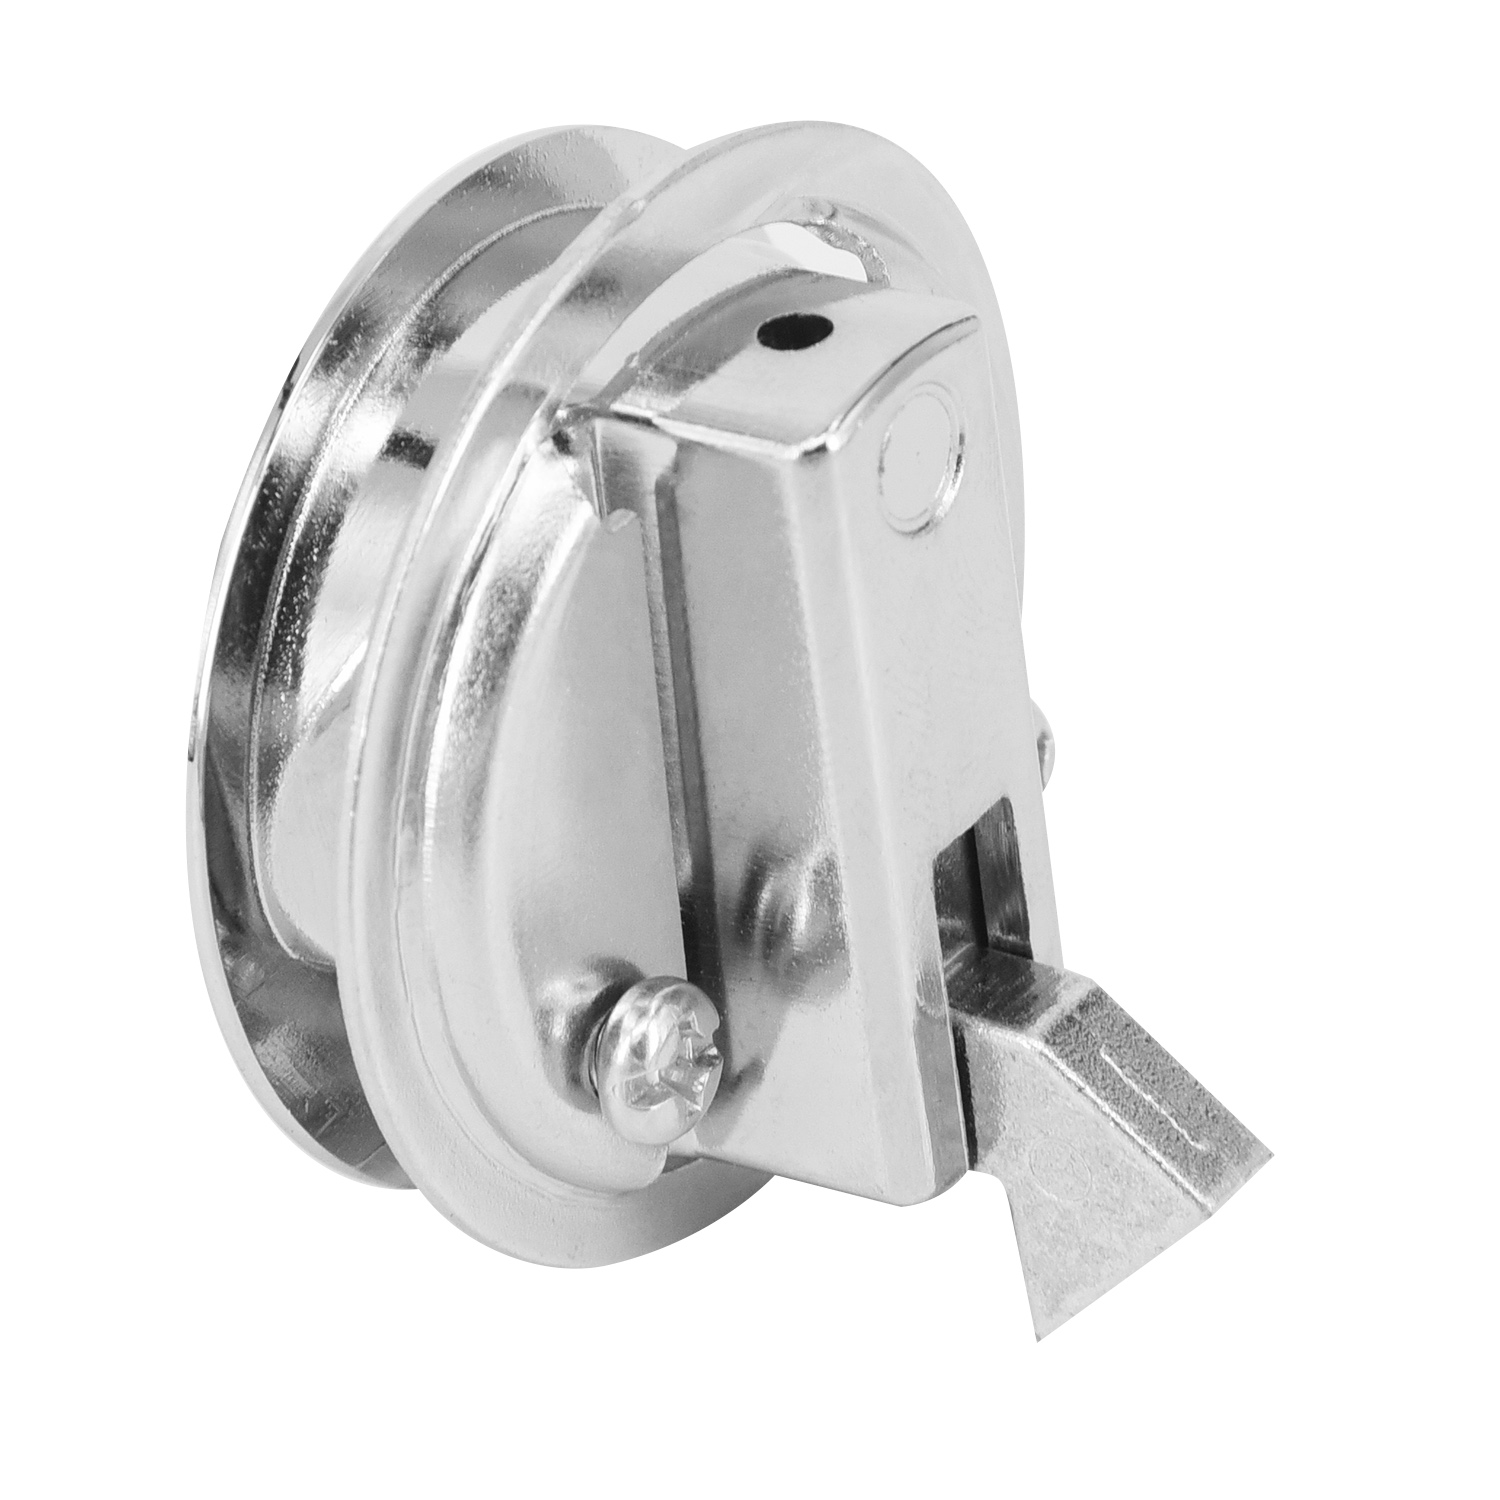 US $7 1 33% OFF Stainless Steel Door Lock 2 Flush Pull Slam Latch For Boat  Deck Hatch Took-in Marine Hardware from Automobiles & Motorcycles on